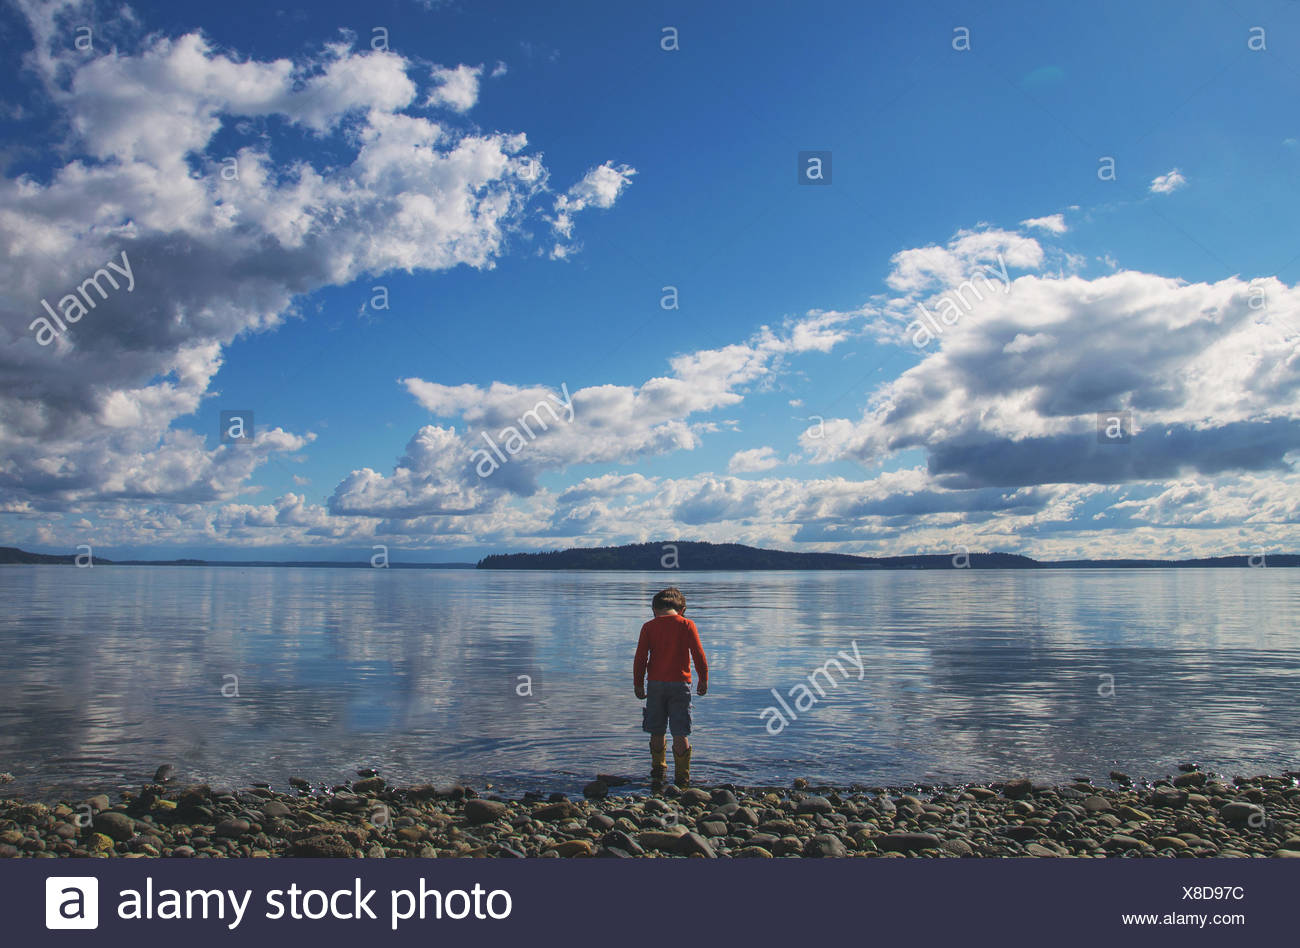 Rear view of boy standing at the water's edge - Stock Image